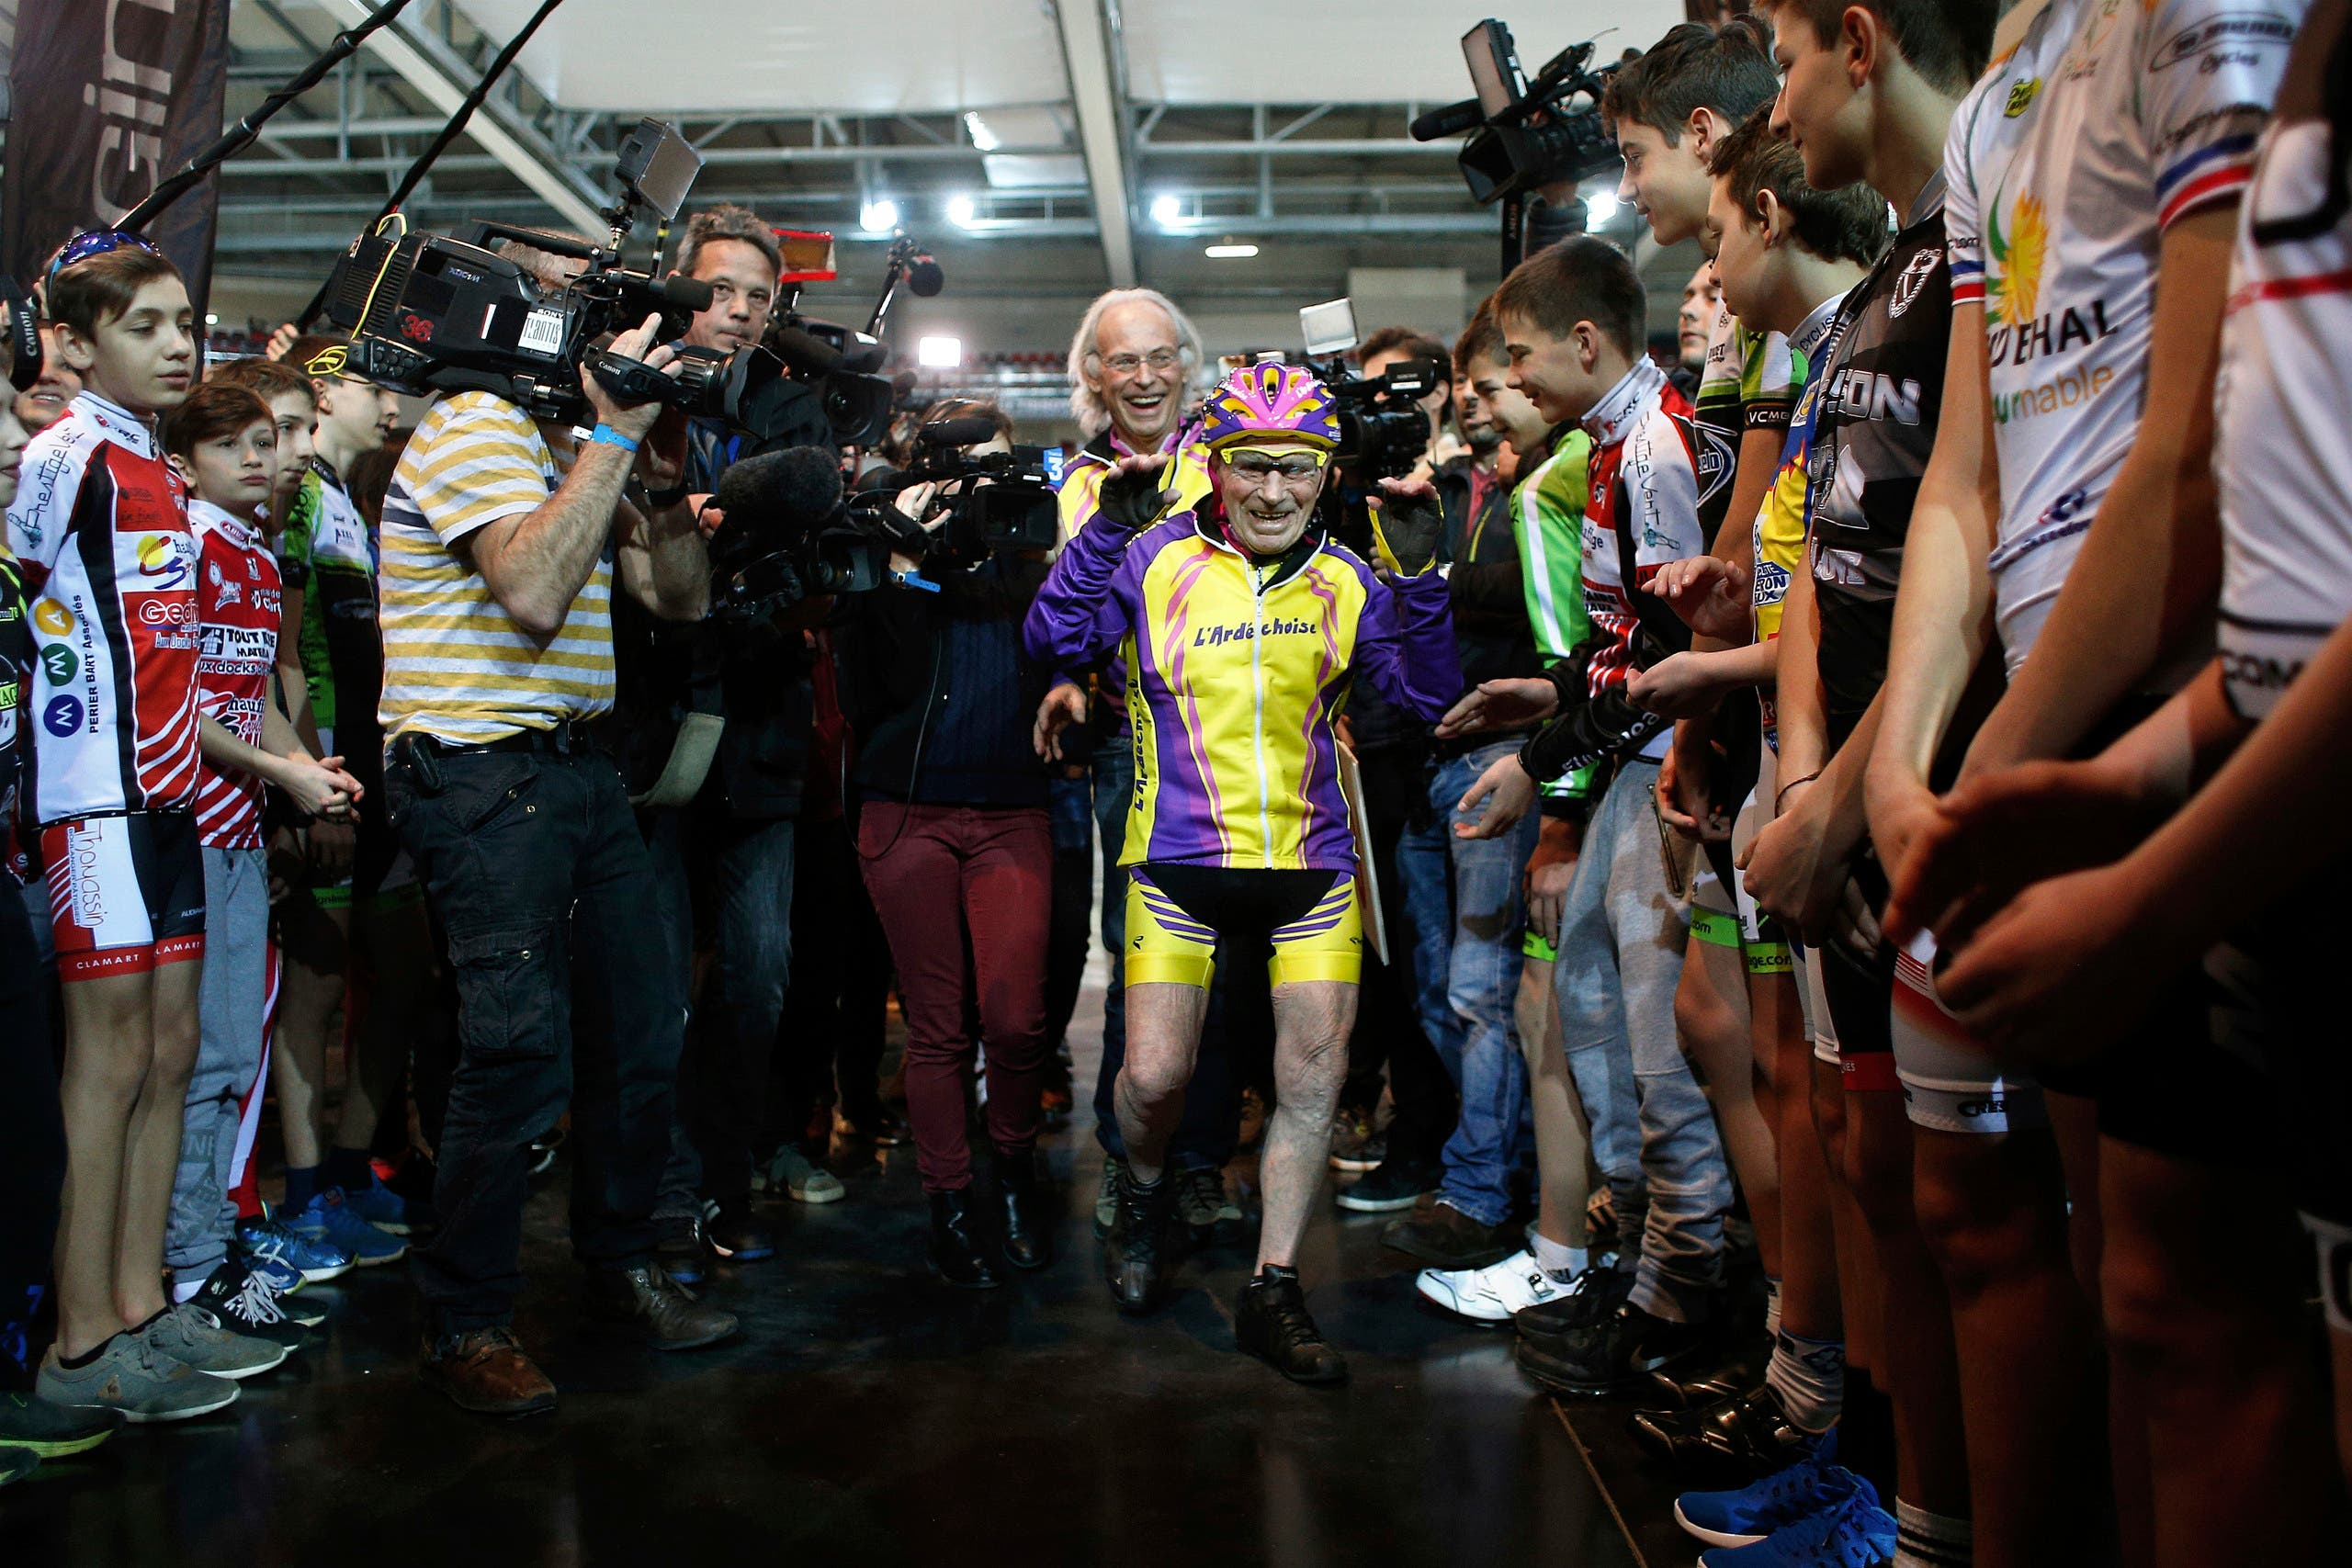 French cyclist Robert Marchand, aged 105, arrives prior to cycle in a bid to beat his record for distance cycled in one hour, at the velodrome of Saint-Quentin en Yvelines, outside Paris, Wednesday, Jan. 4, 2017. (AP)